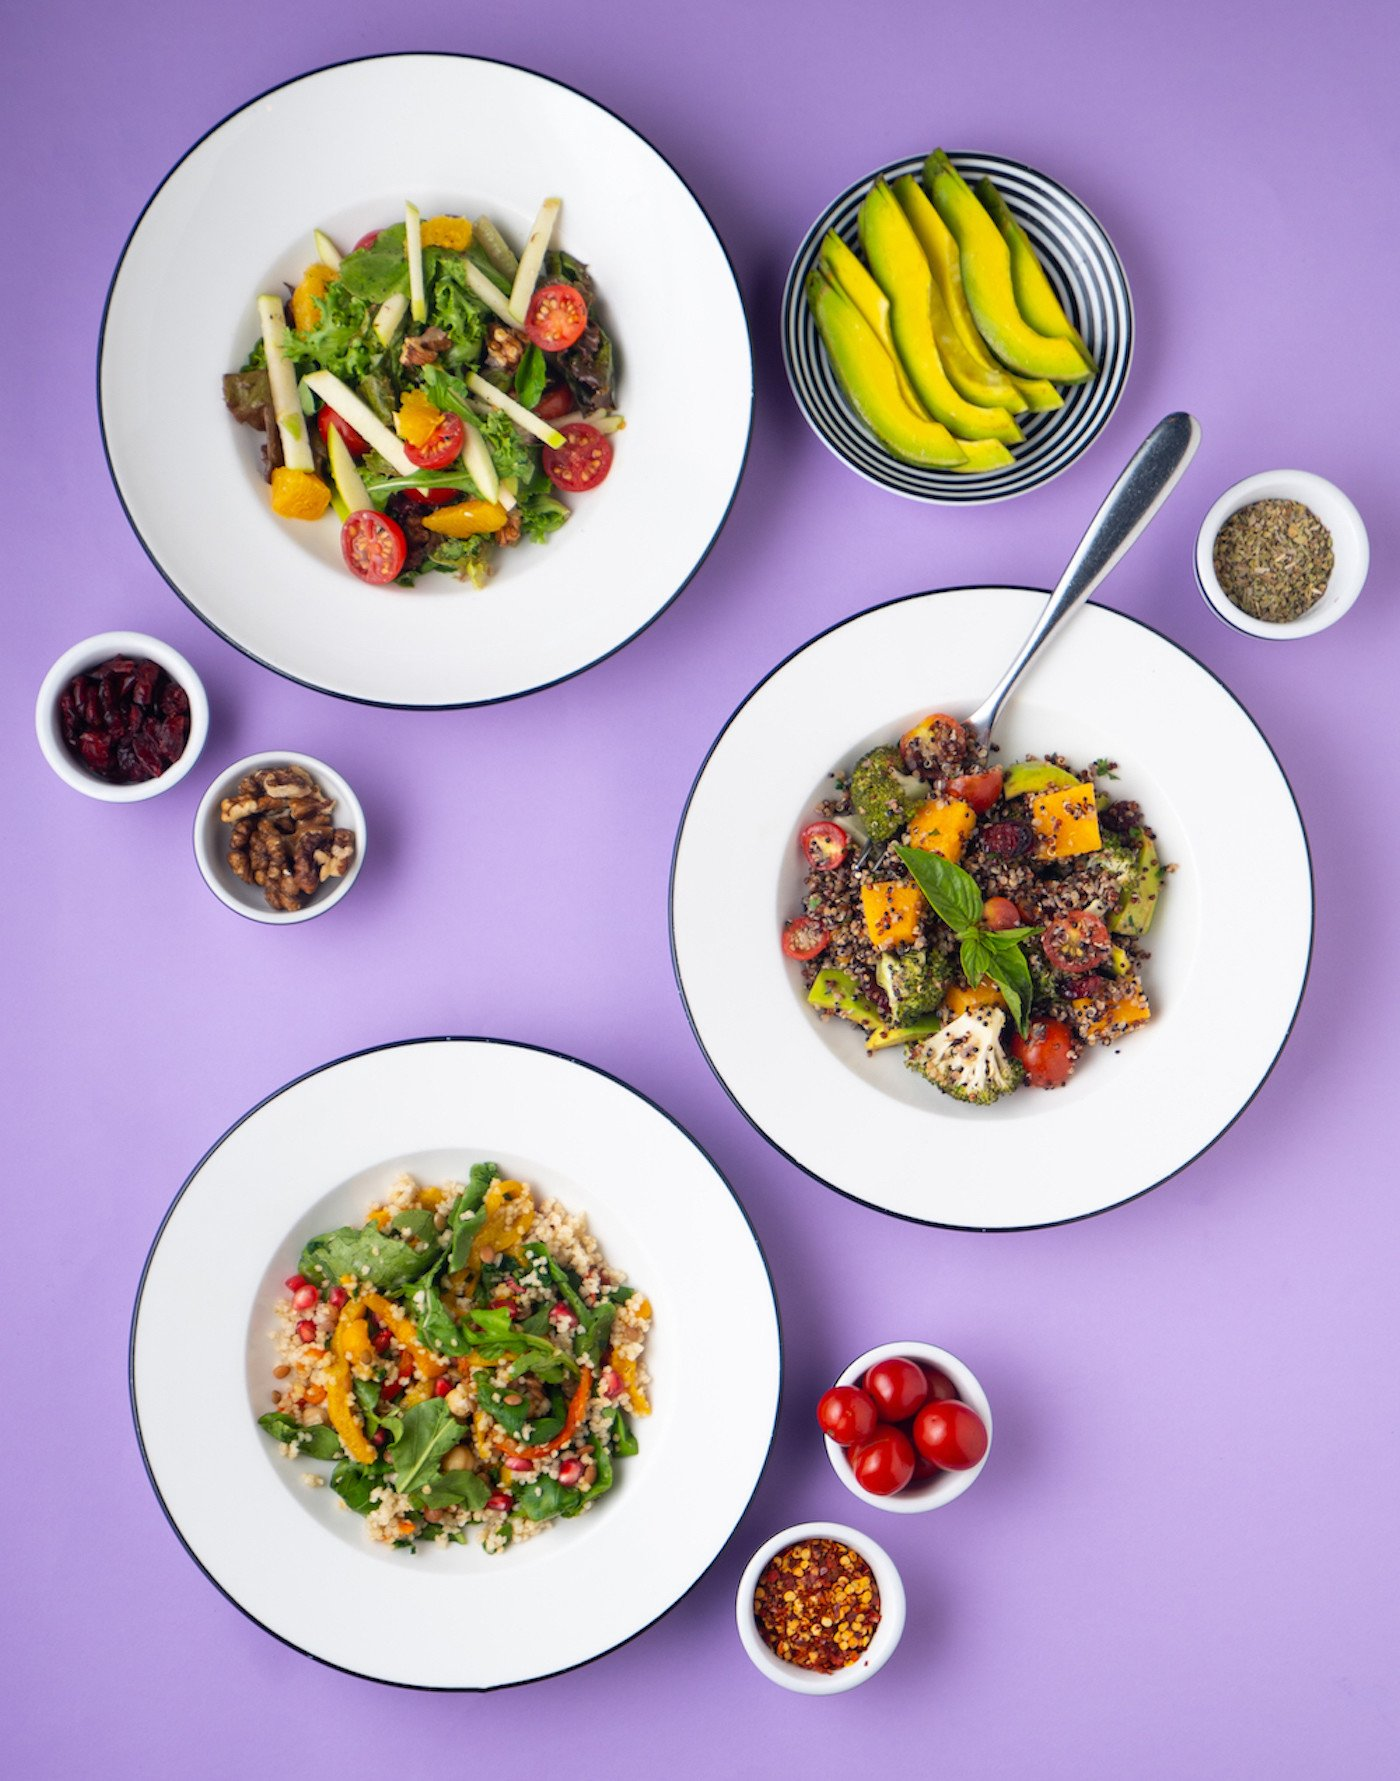 Pizza Express launches wholesome and good-spirited 'Good Mood Food' Menu